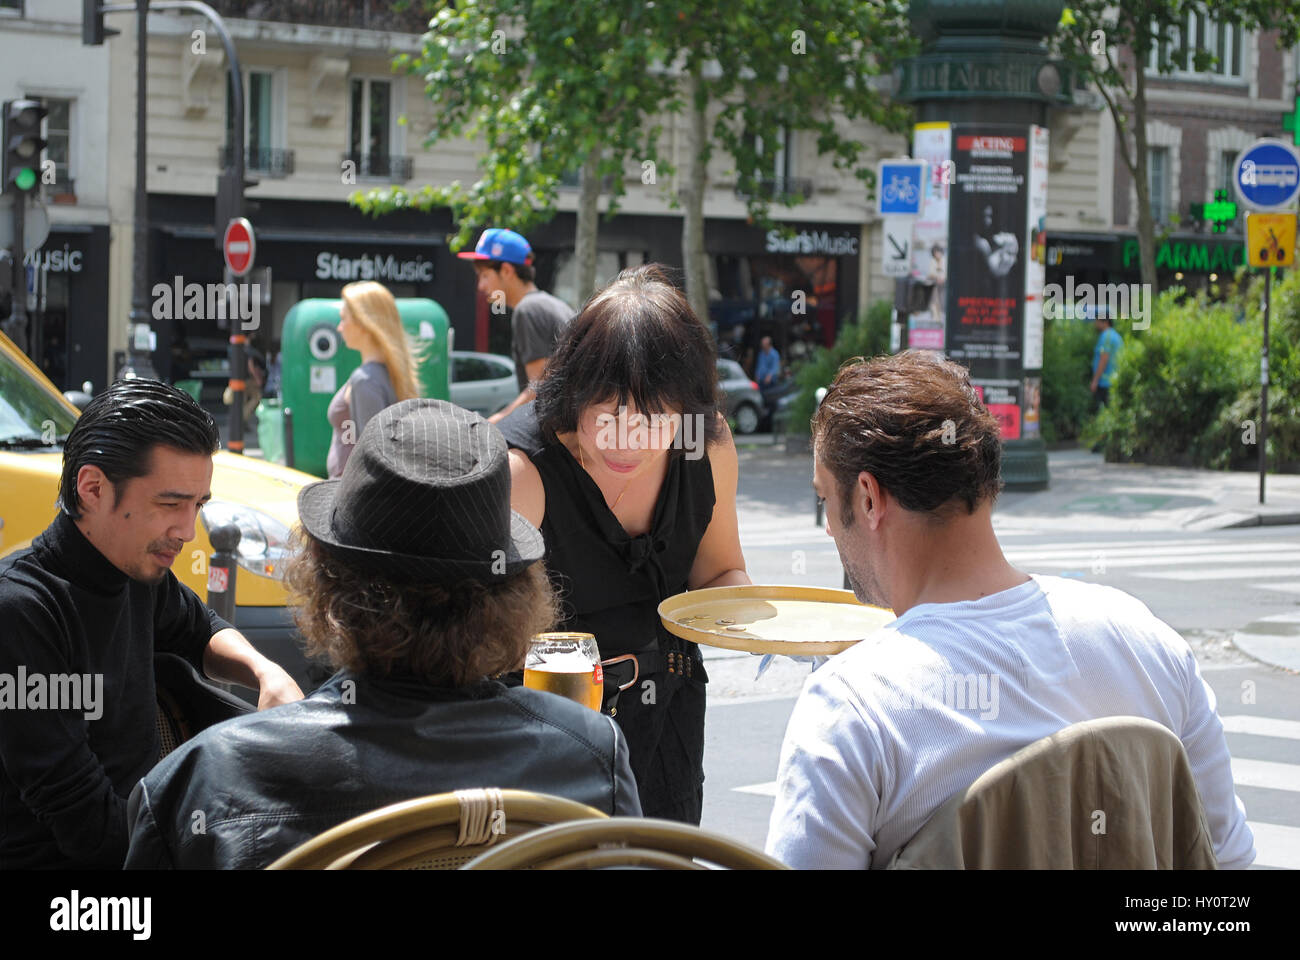 Paris, France, 21 June: A waitress serves visitors a cafe on the Boulevard de Clichy hot sunny day June 21, 2012 - Stock Image